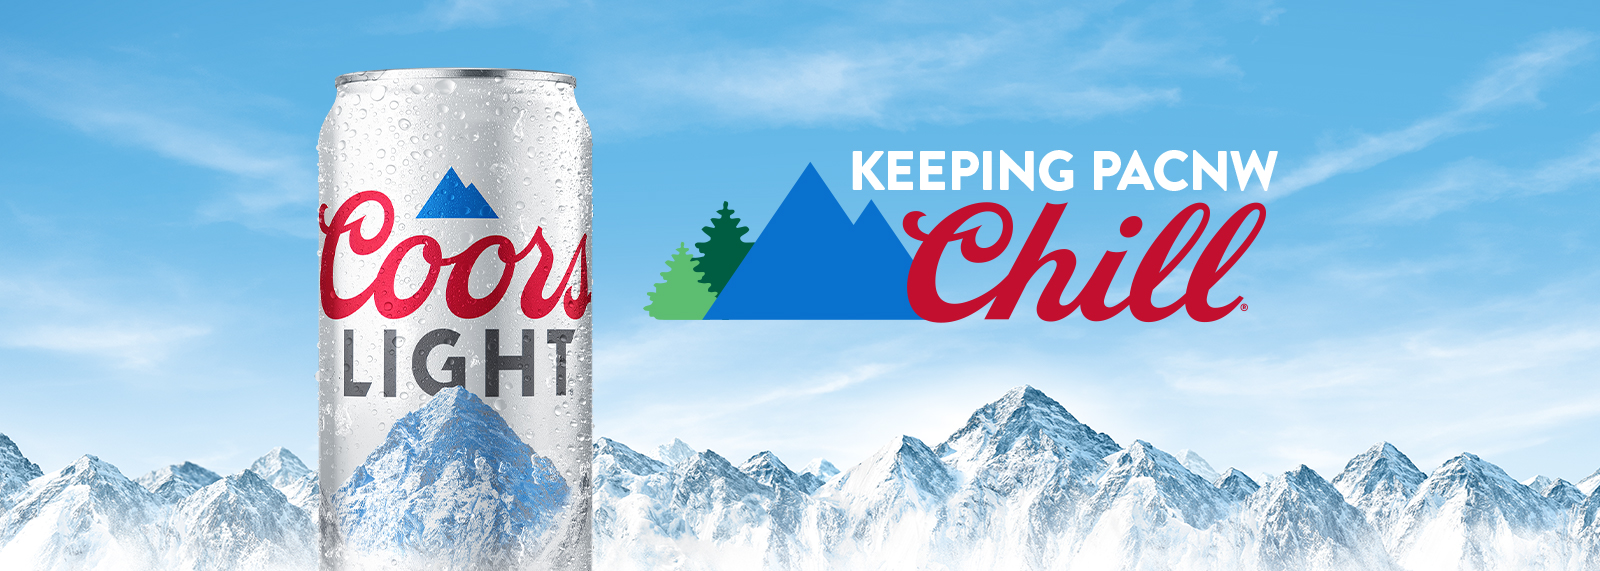 Miller Coors - Keeping PACNW Chill